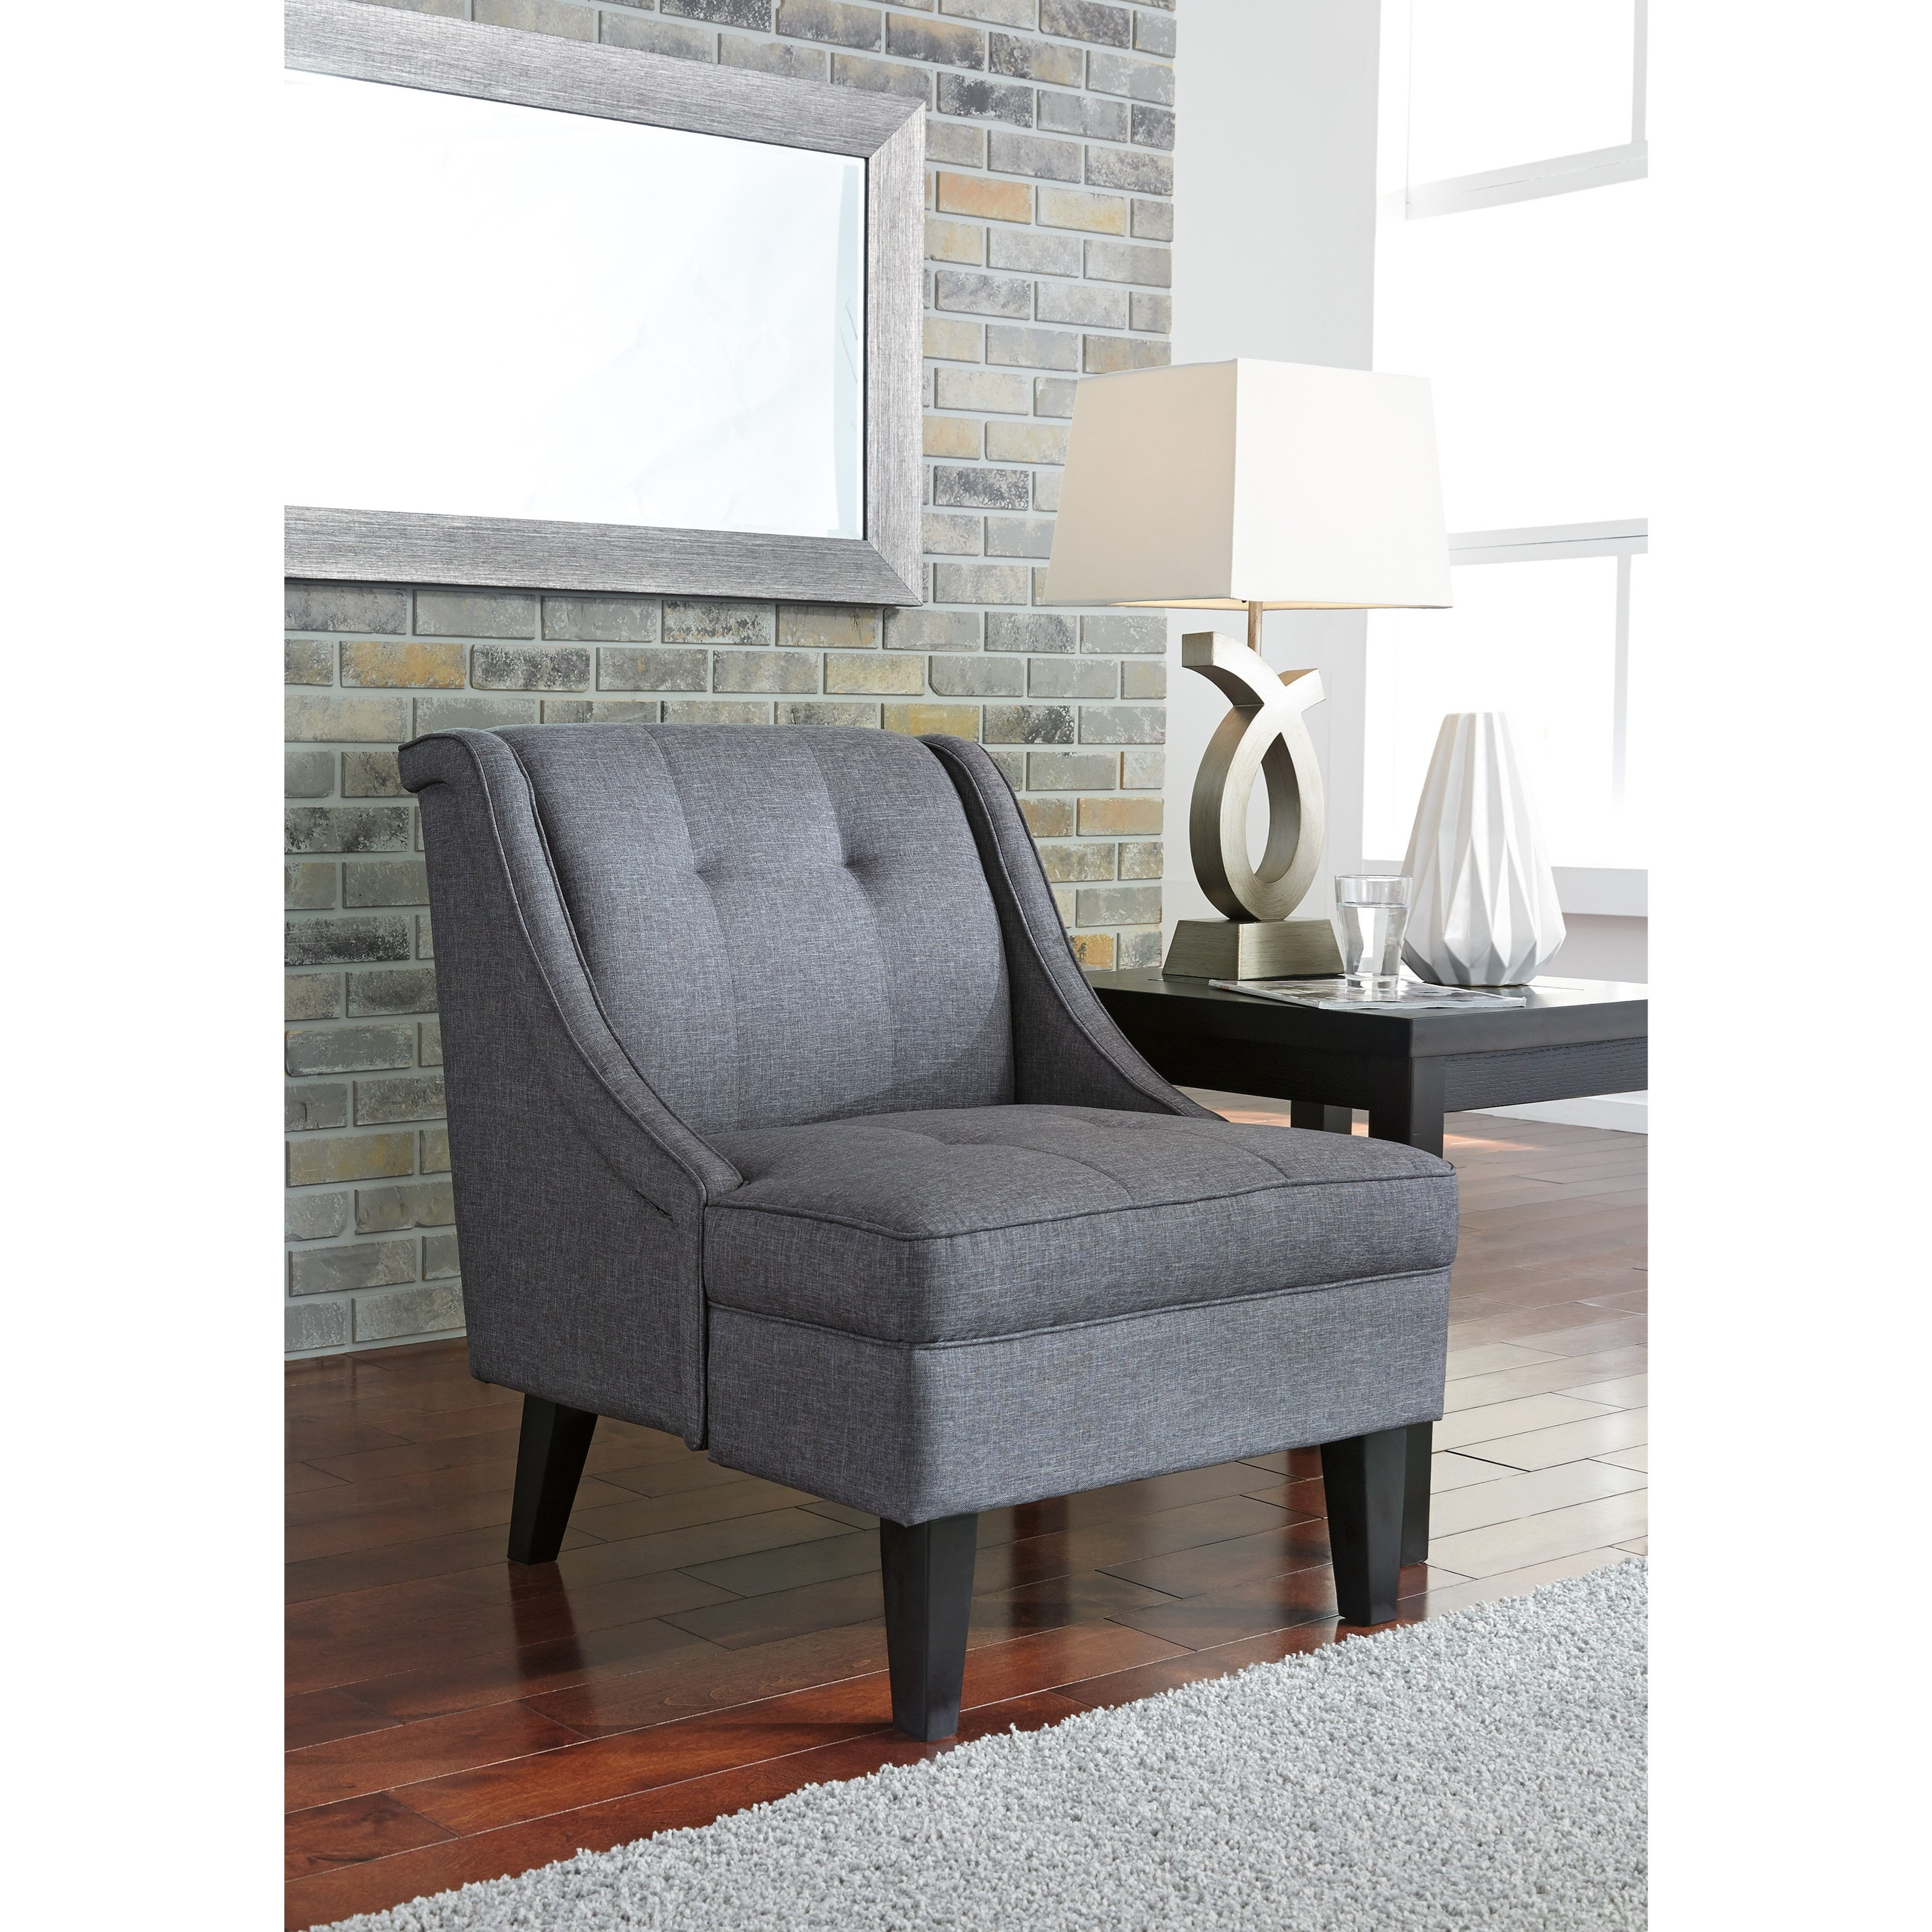 Ashley Furniture Outlet Wausau: Ashley Furniture Calion 2070260 Accent Chair With Button